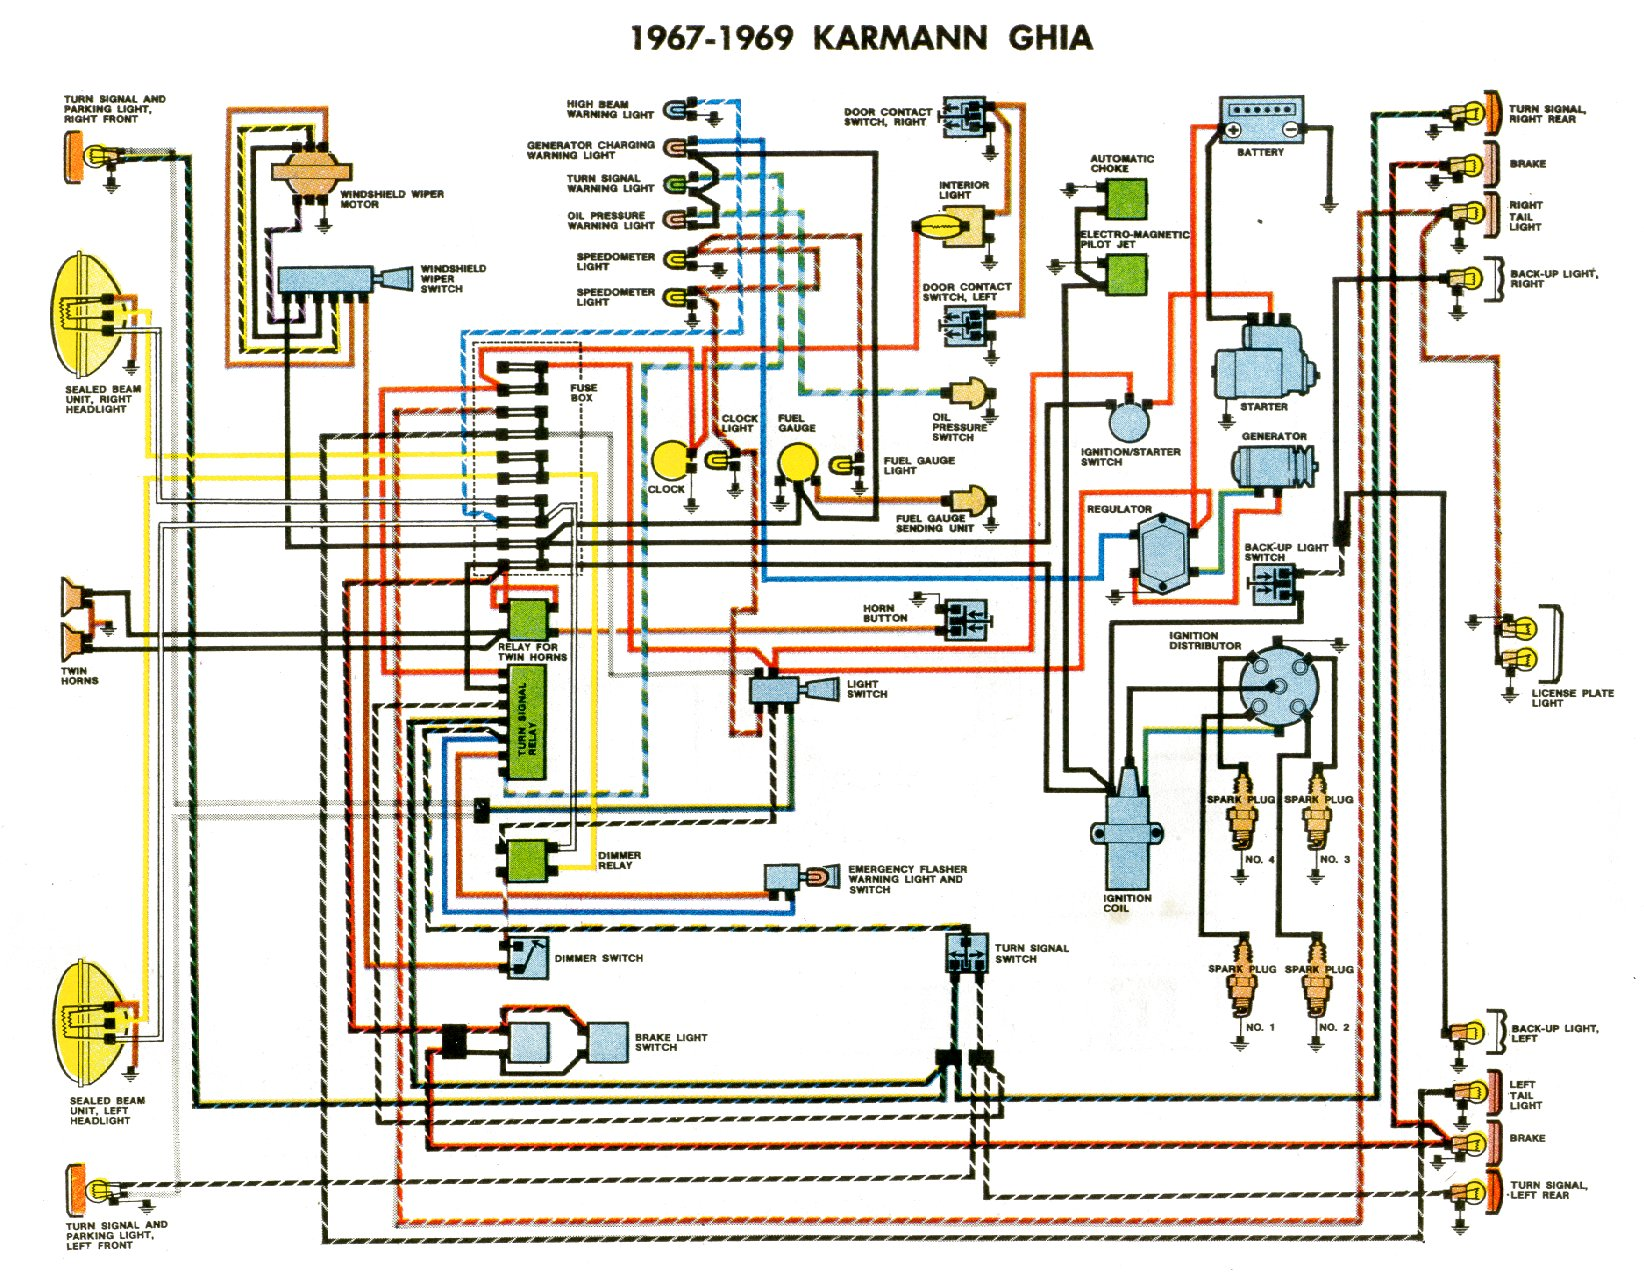 velvac mirror wiring diagram part numbers | wiring library velvac mirror wiring diagram chance coach velvac mirror wiring diagram part numbers